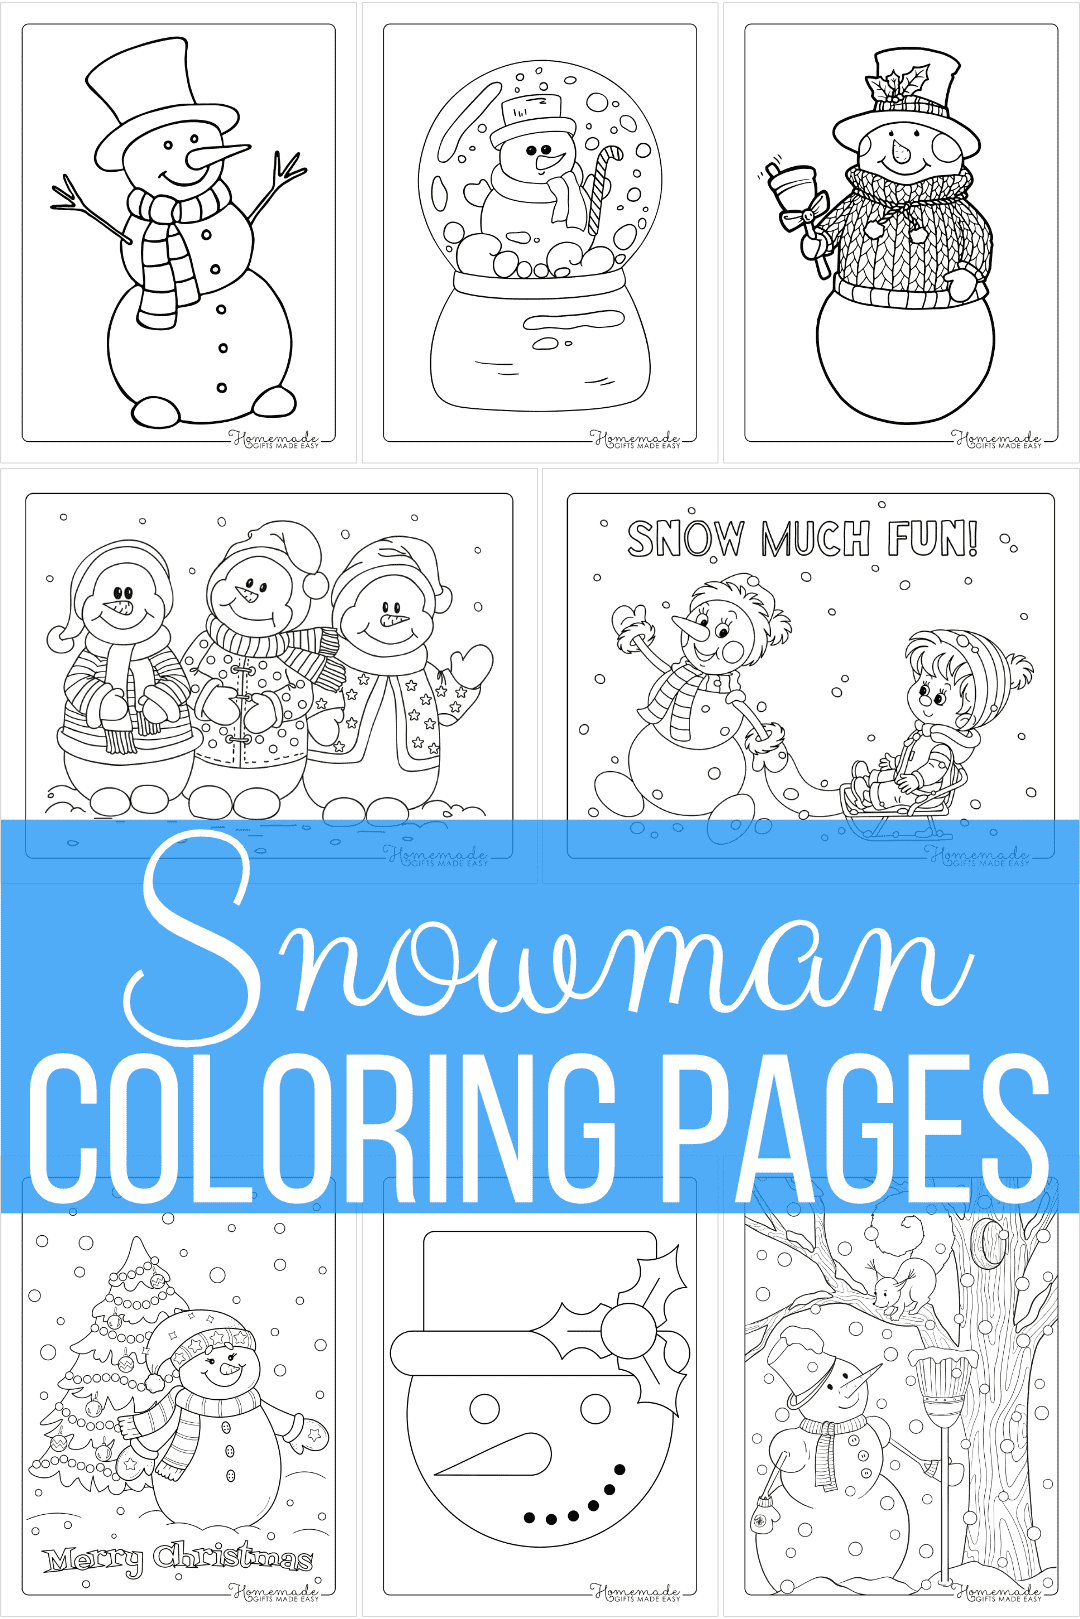 free printable snoman coloring pages - 60+ designs